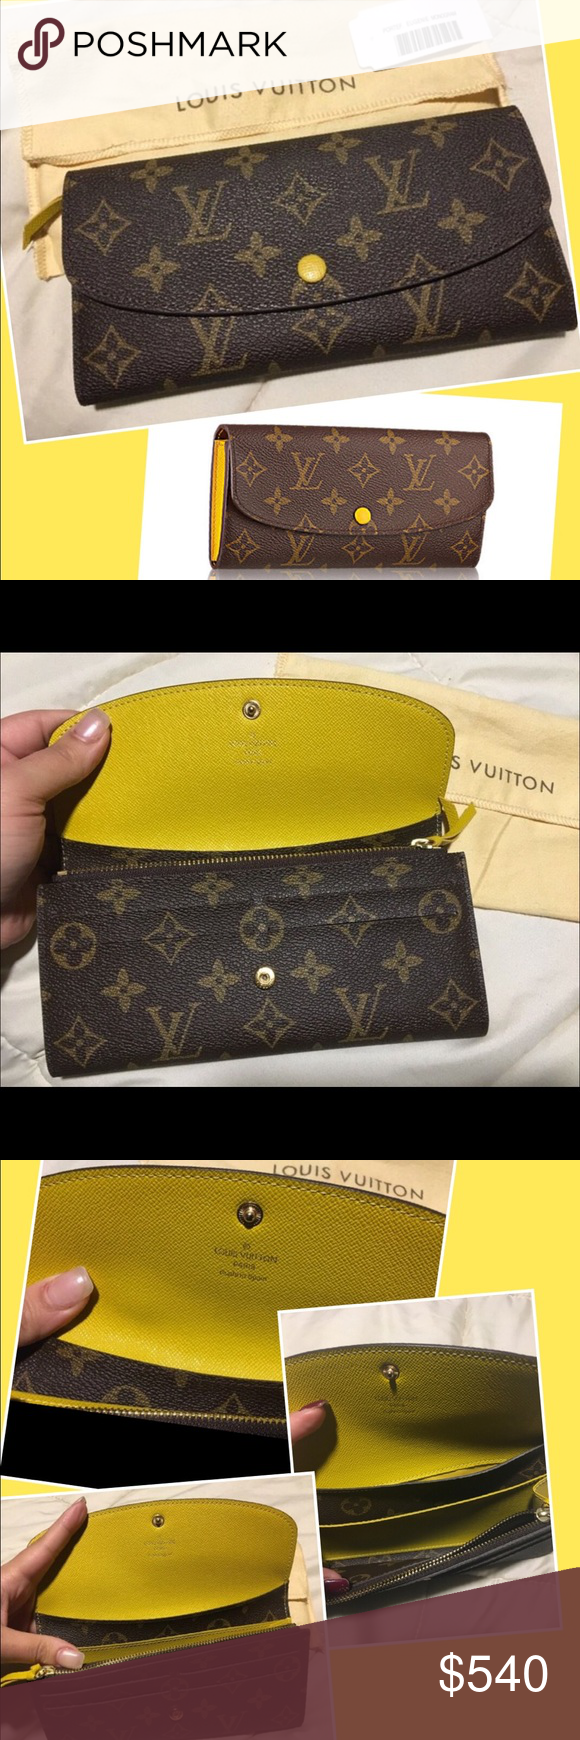 bb33f1c4667aa Louis Vuitton EMILIE WALLET yellow monogram Louis Vuitton EMILIE WALLET  brand new in yellow monogram print